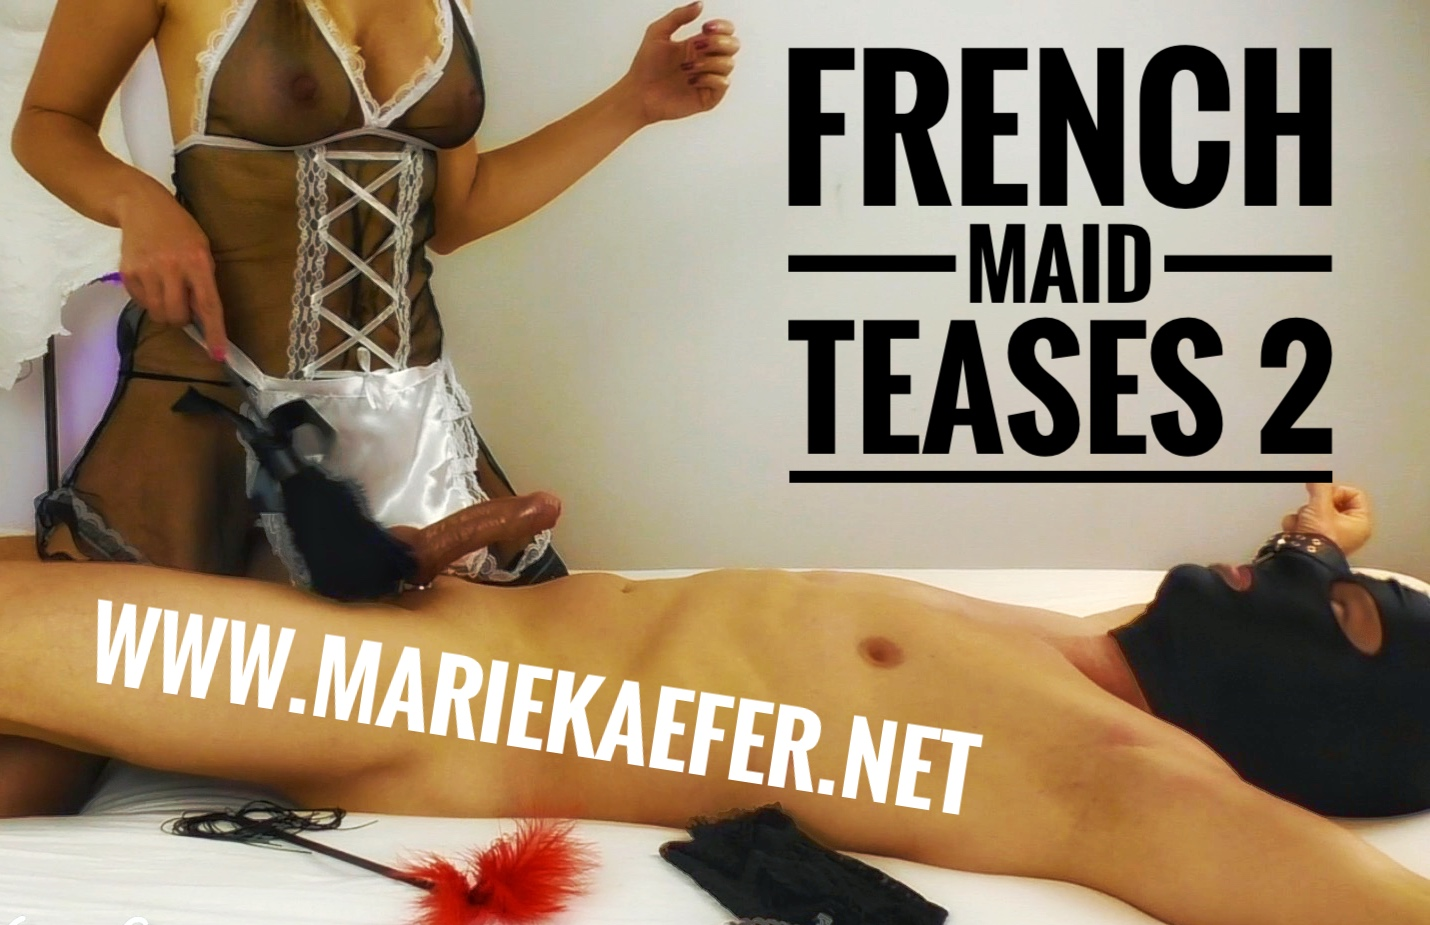 French Maid Teases 2